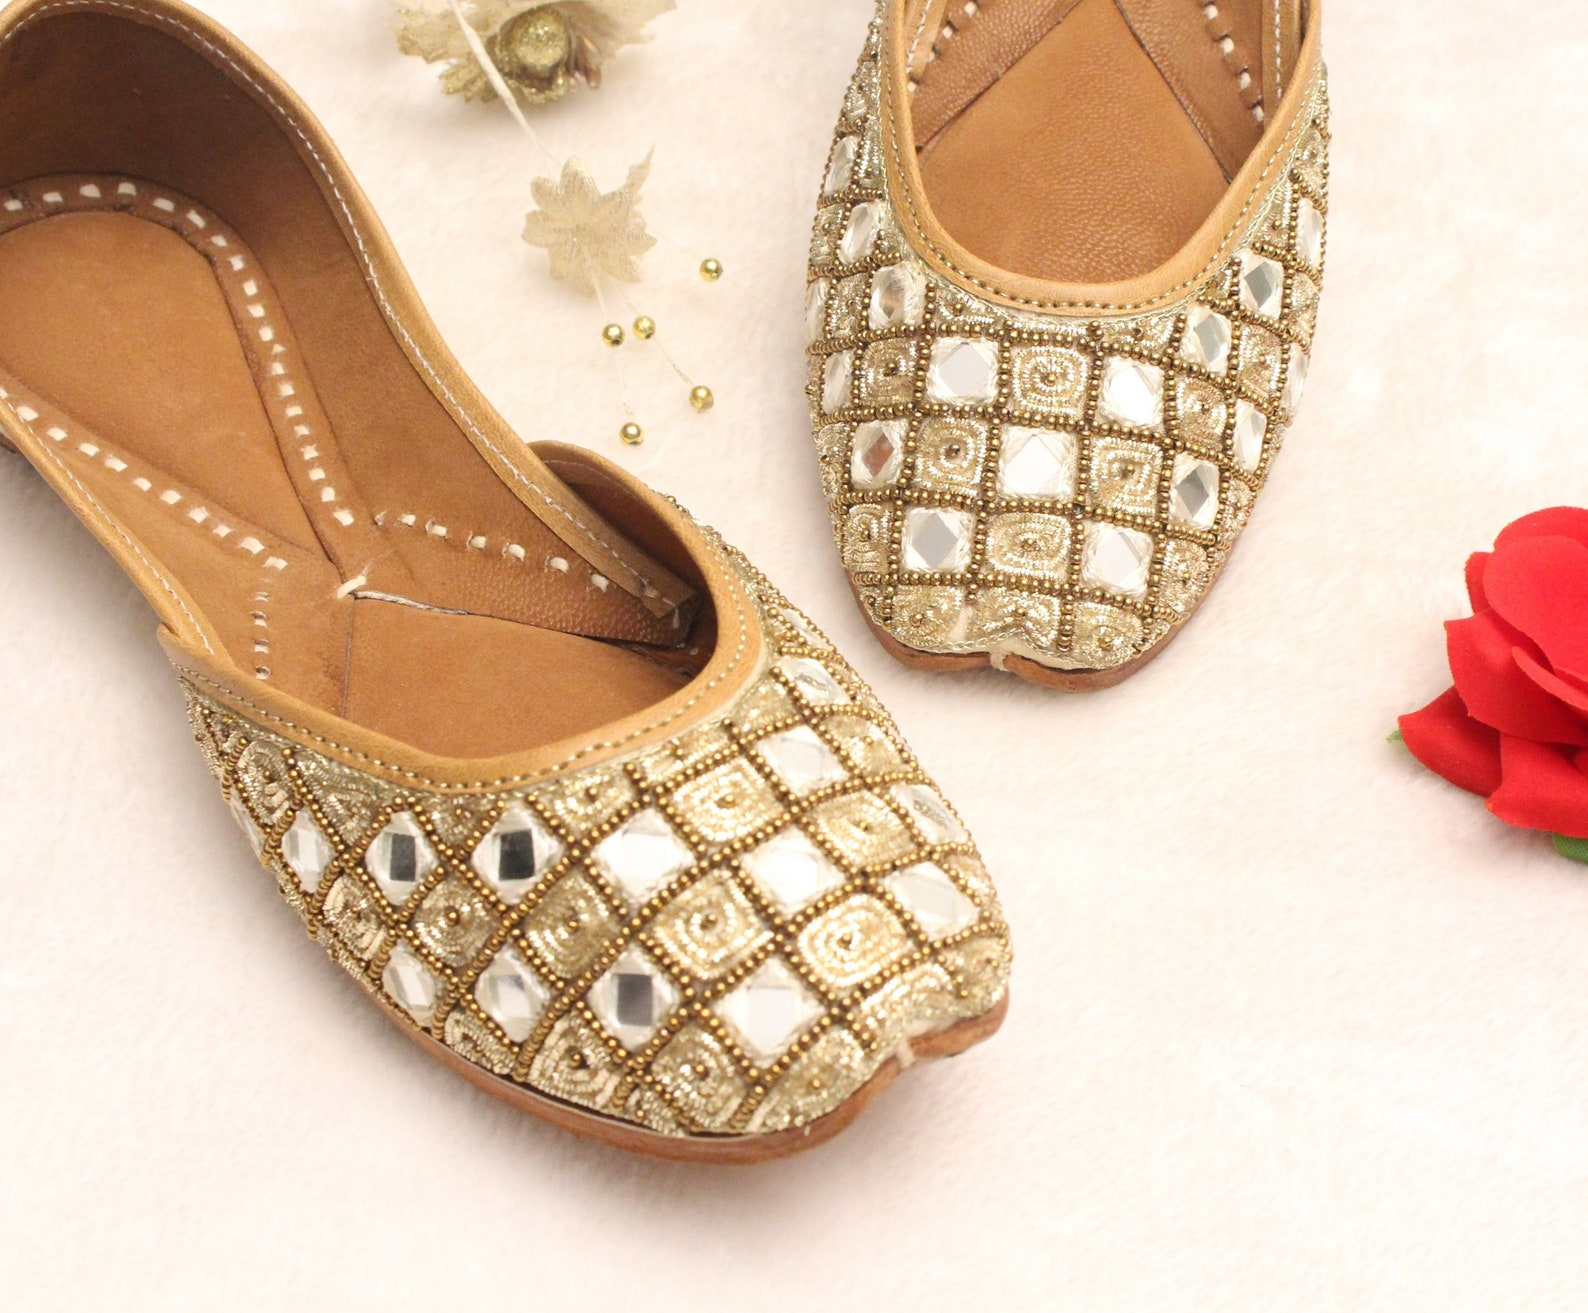 gold bridal wedding shoes us size 4.5 women lehnga indian jutti shoes/gold wedding flats/gold ballet flats/khussa shoes/punjabi